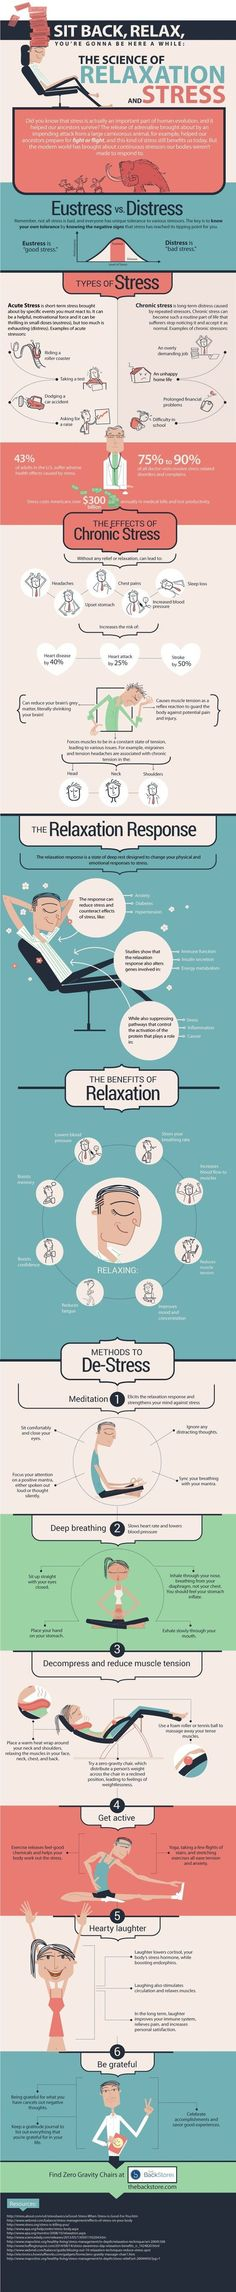 How to Reduce Stress: 5 Soothing Routines to Crush Stress Once and For All